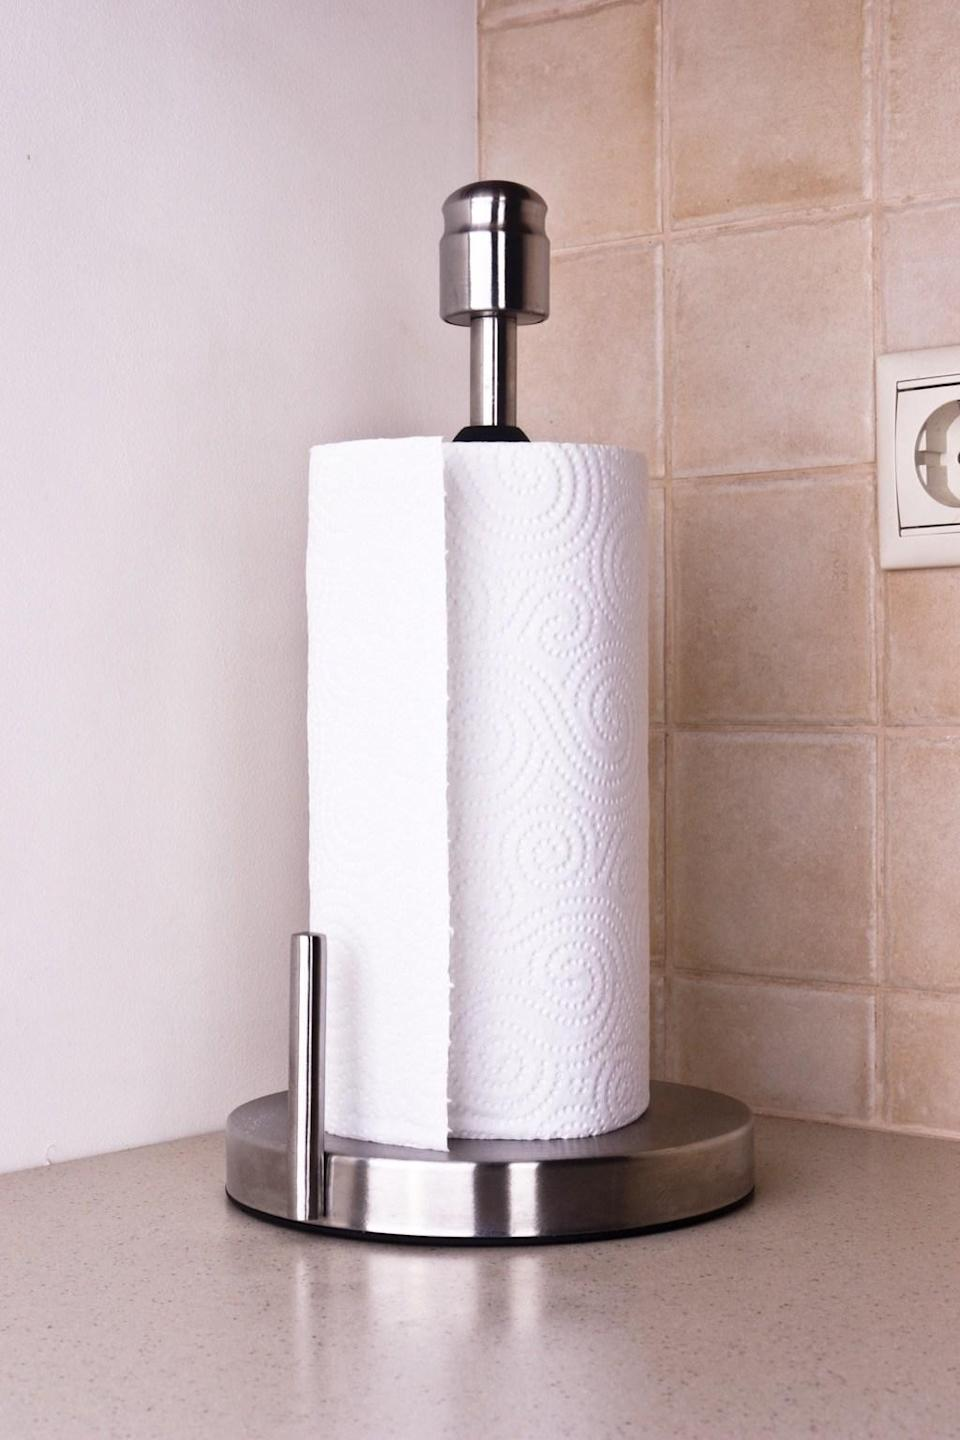 <span>While using paper towels here and there is necessary for most people, chances are you can cut down on at least three-quarters of your paper towel use by stocking a few shop towels for cleaning up spills, wiping down your kitchen counter, and other basic uses like that. Instead of grabbing up a handful of pricey paper towels every time something needs to be cleaned up use and reuse these actual towels and toss in the laundry. </span>